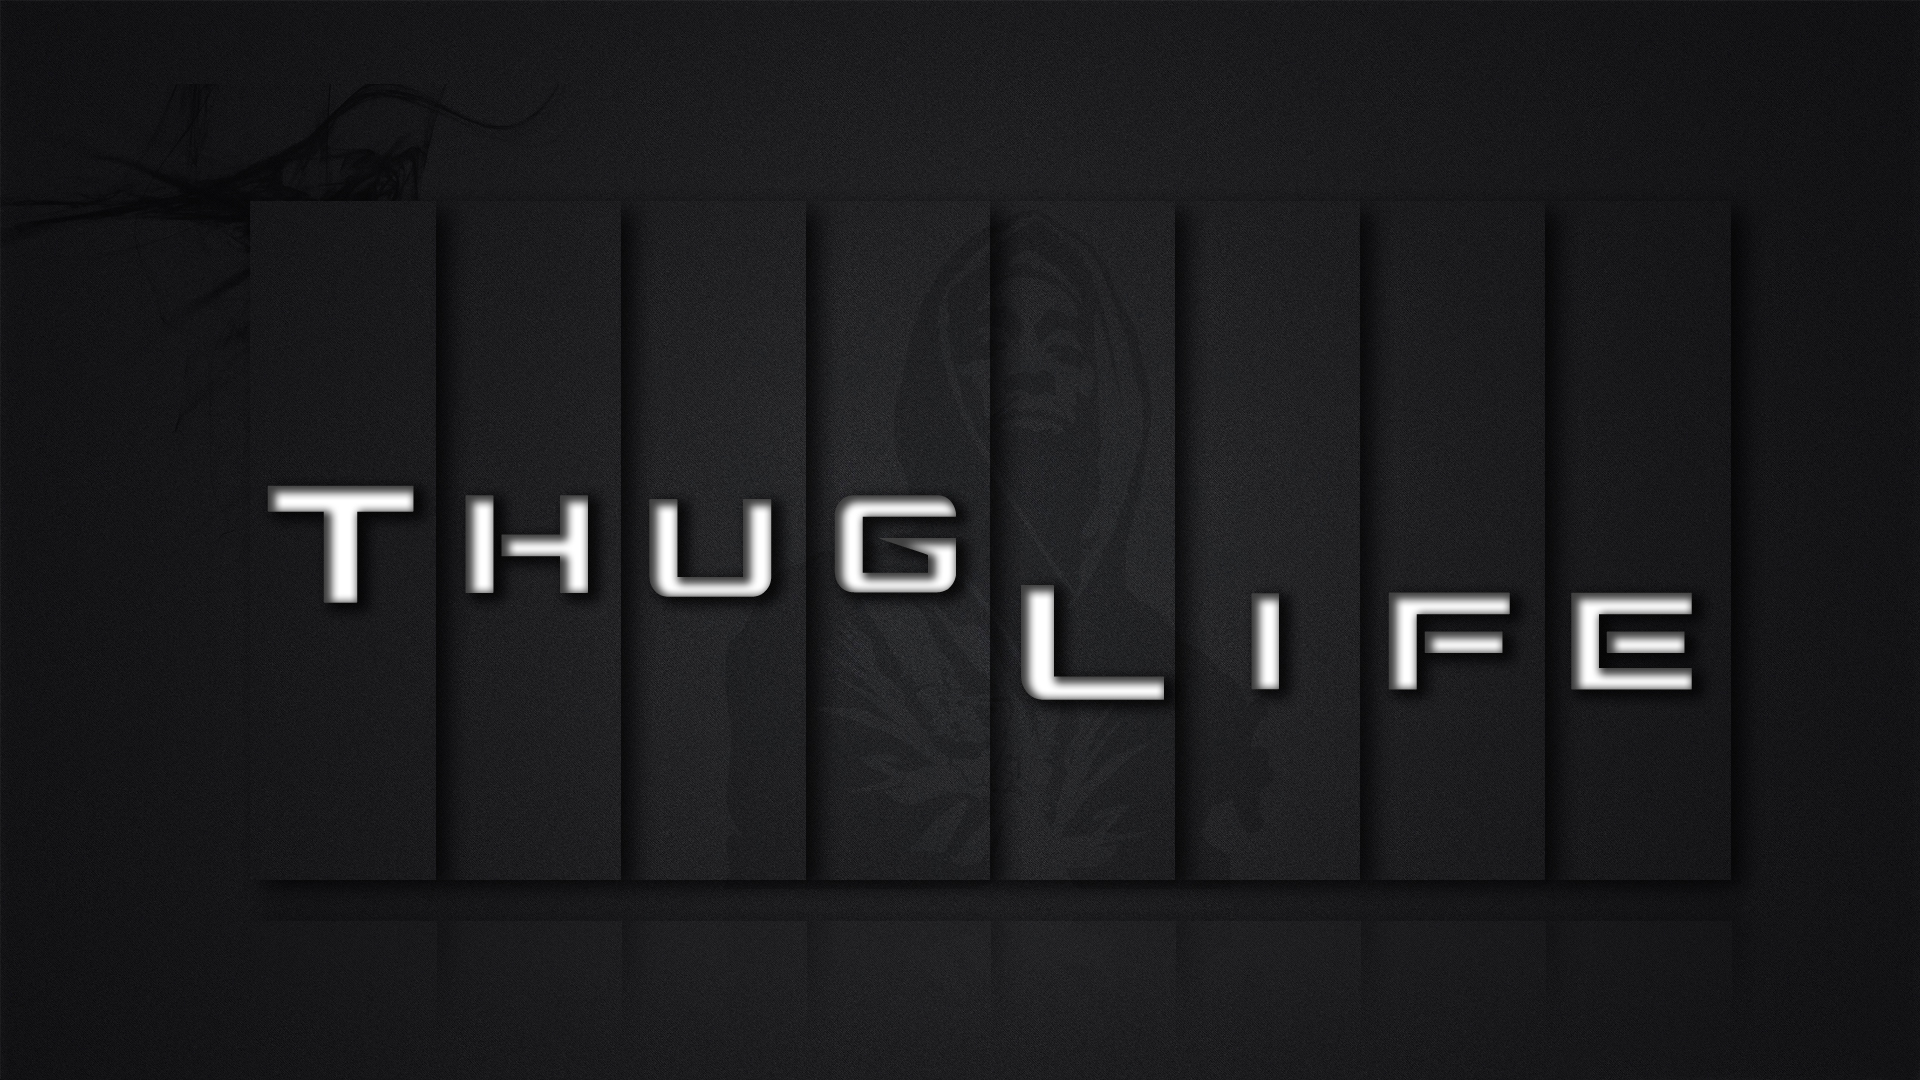 is under the life wallpapers category of hd wallpapers thug life 1920x1080